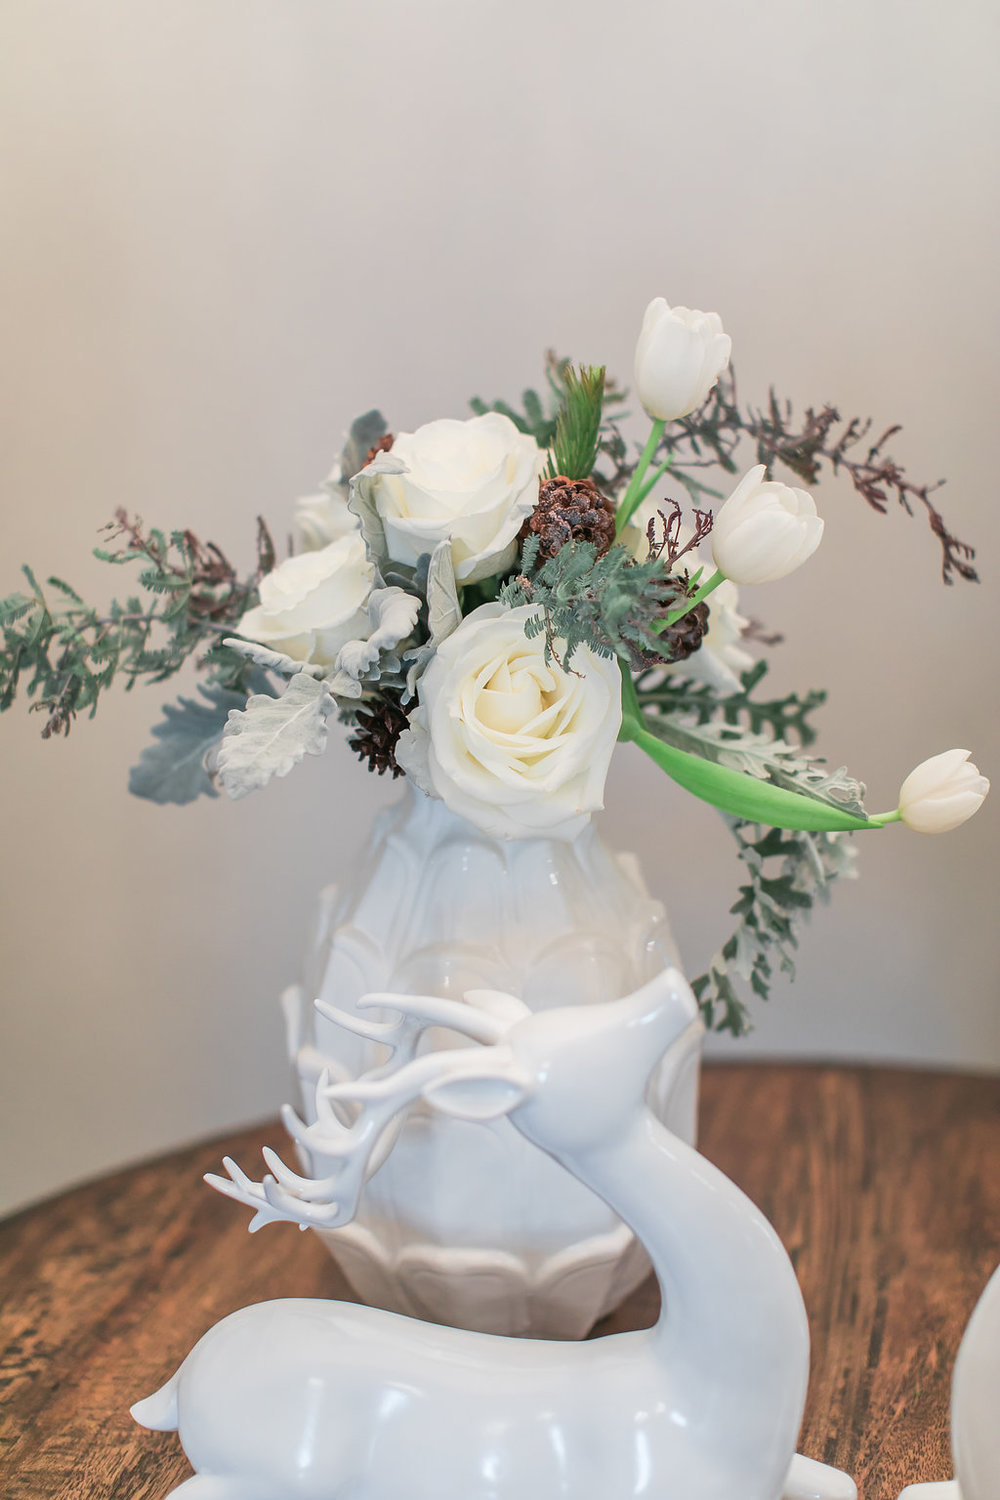 Christmas Floral Arrangement with Roses and Dusty Miller